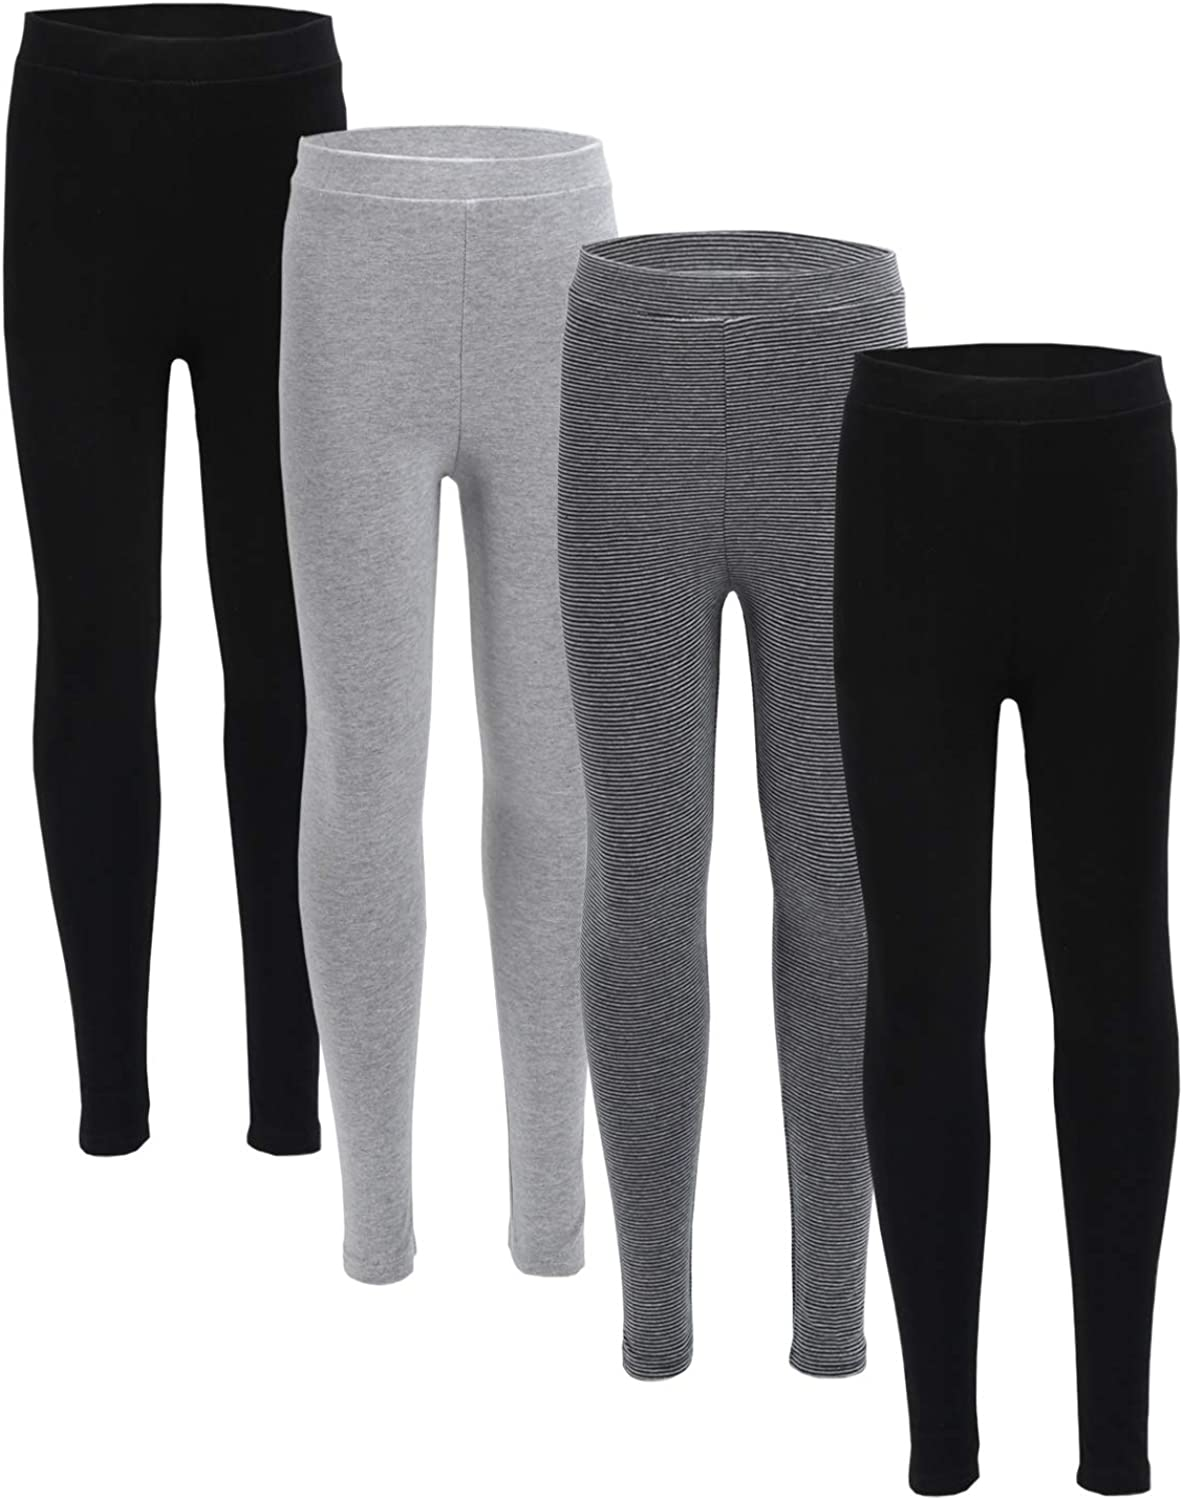 WEWINK PLUS Girls Leggings 4 Pack Cotton Basic Leggings Ankle Length Active Girl Tight Trousers Comfy Kid Pants